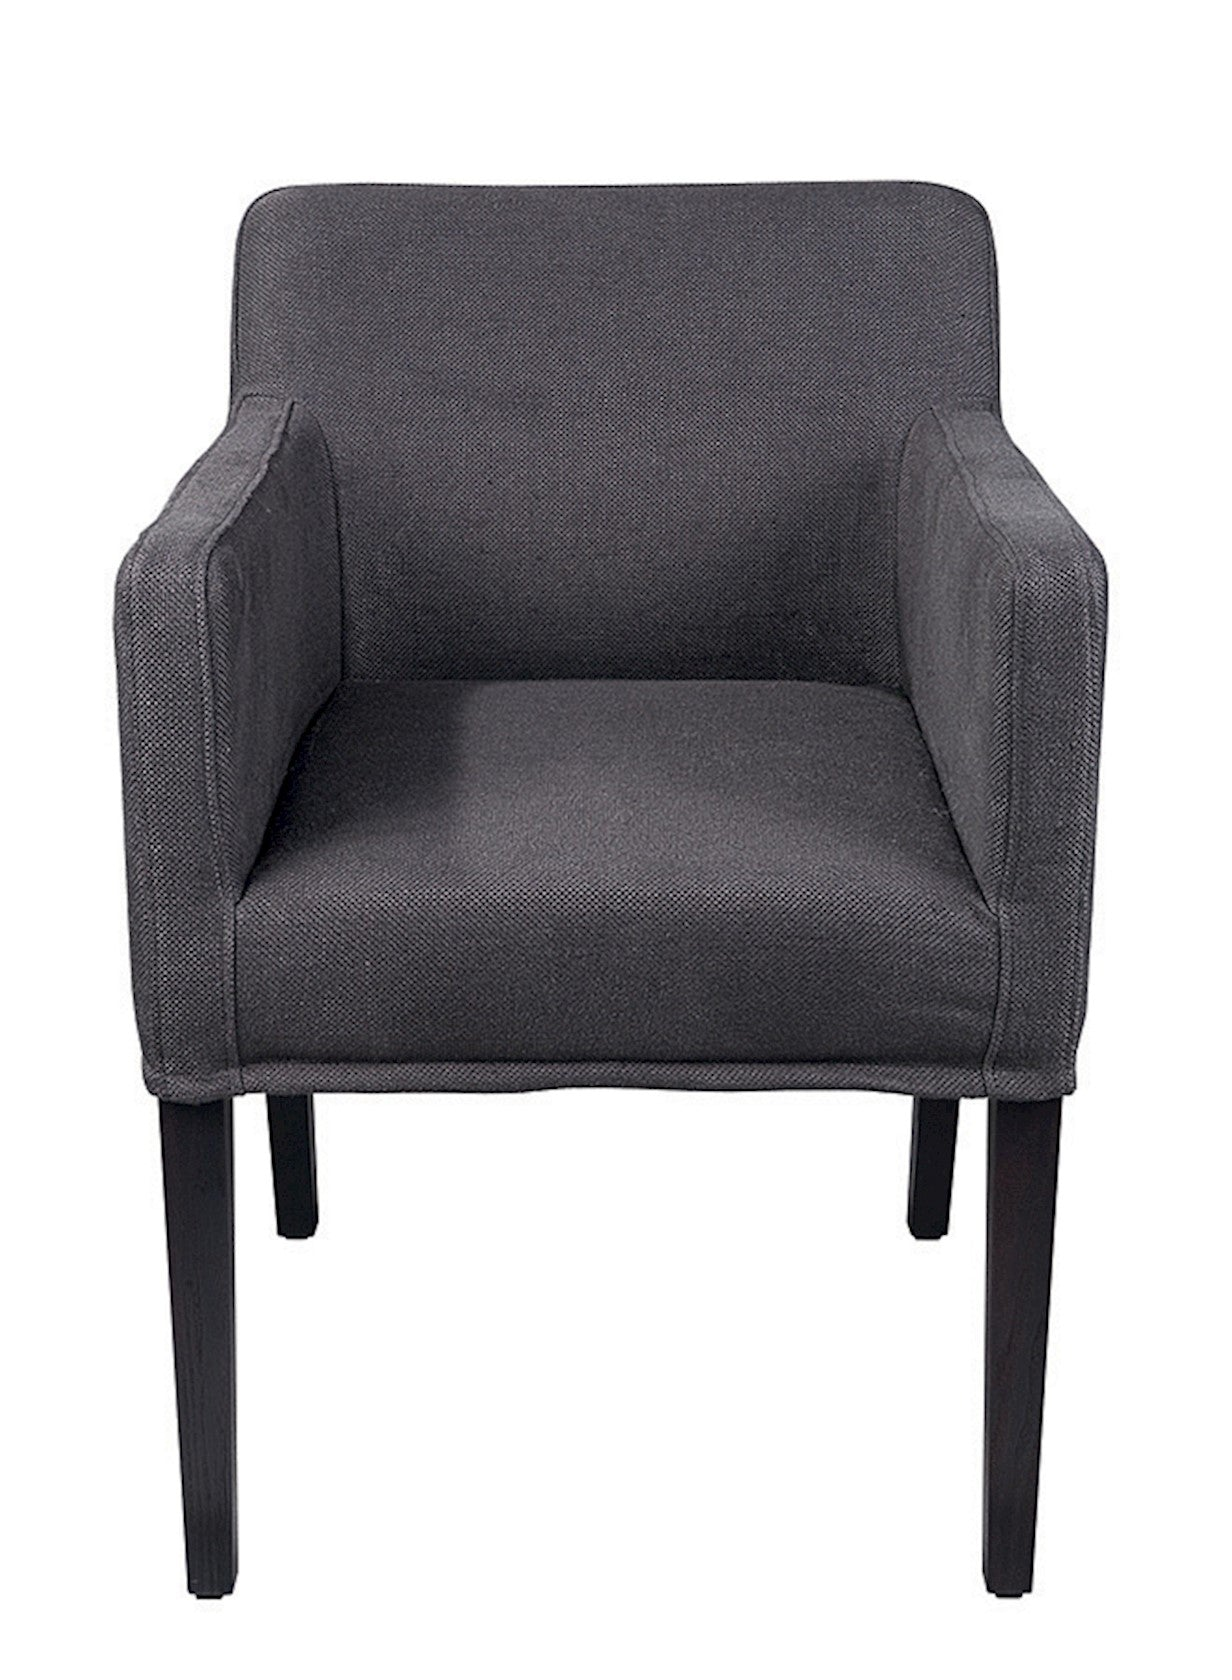 DINING ARMCHAIR 'DAVI' - SCAPA HOME OFFICIAL